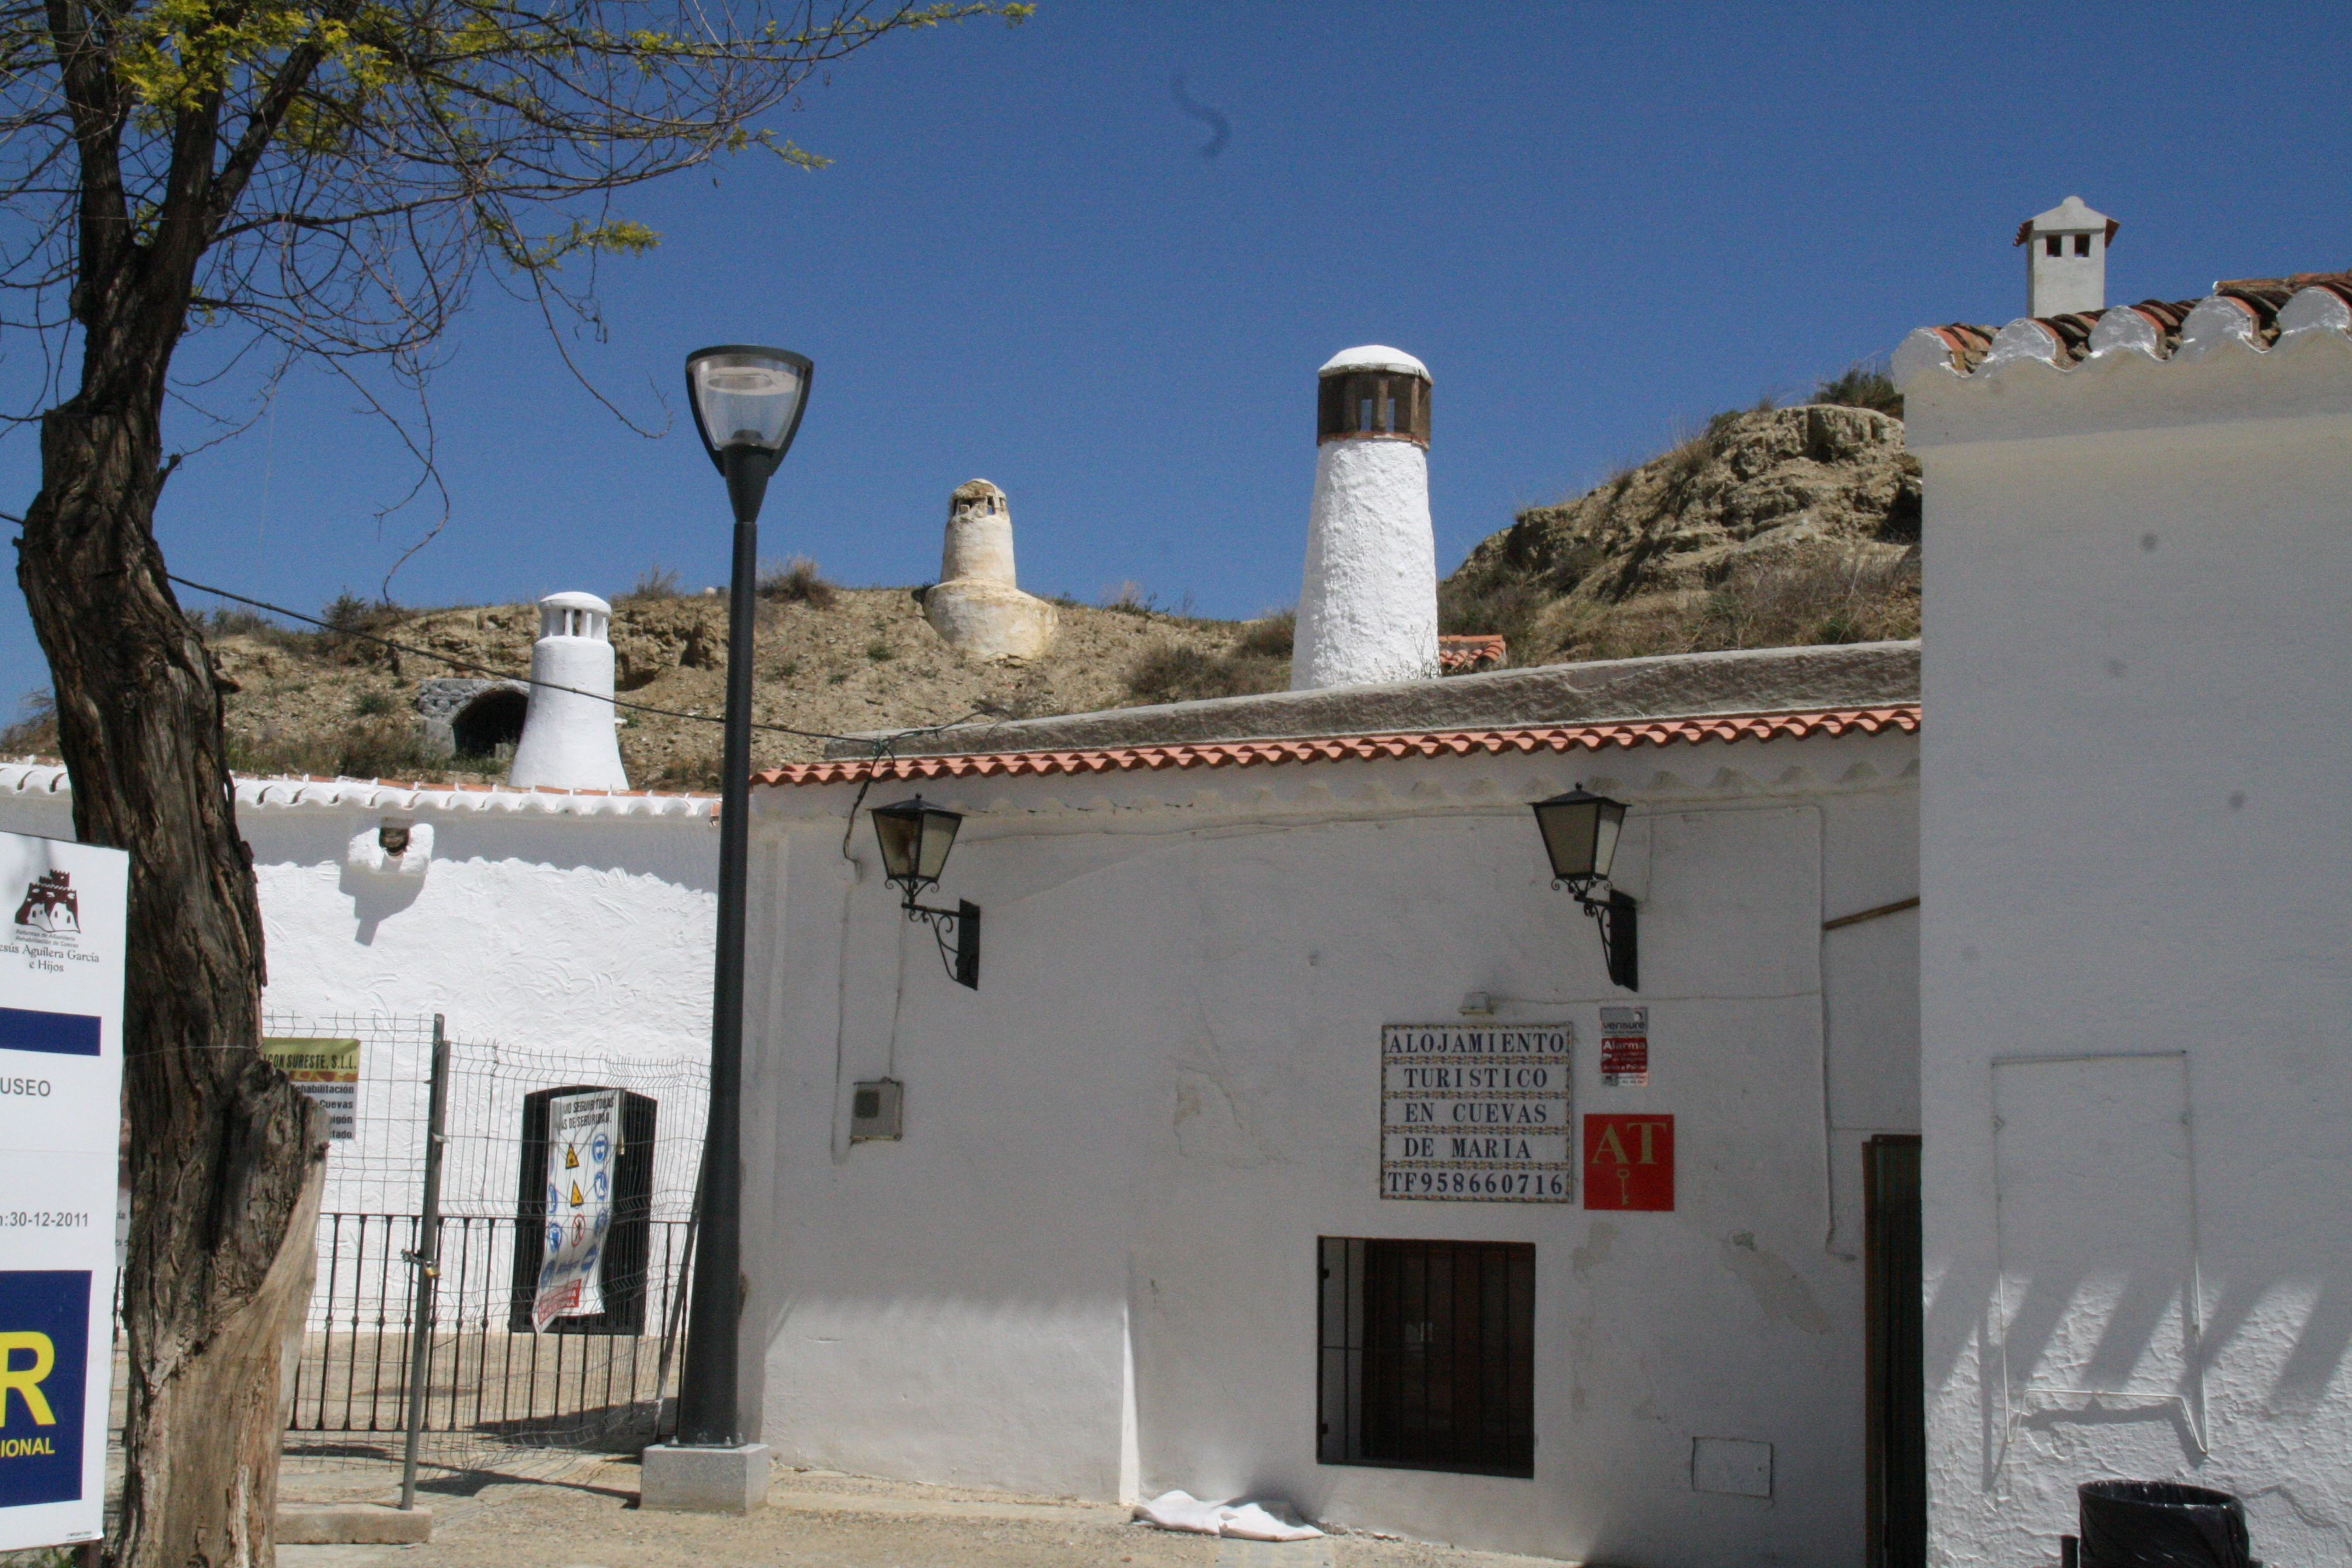 Outside a cave dwelling in Guadix